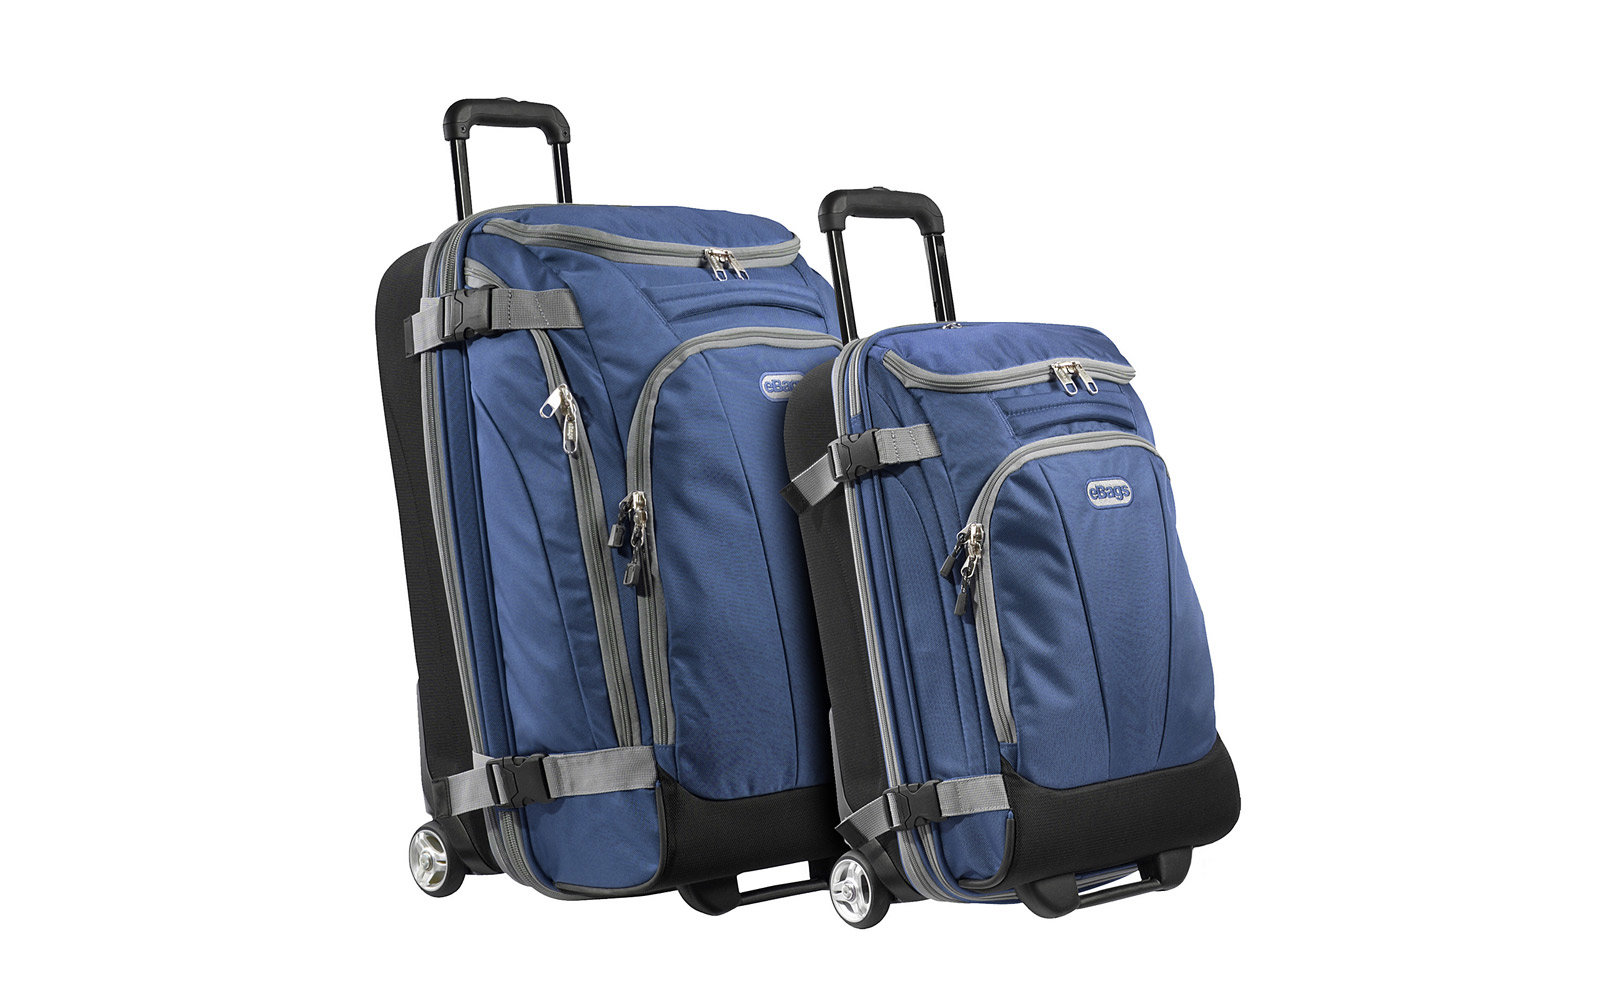 ebags 2-piece value luggage set